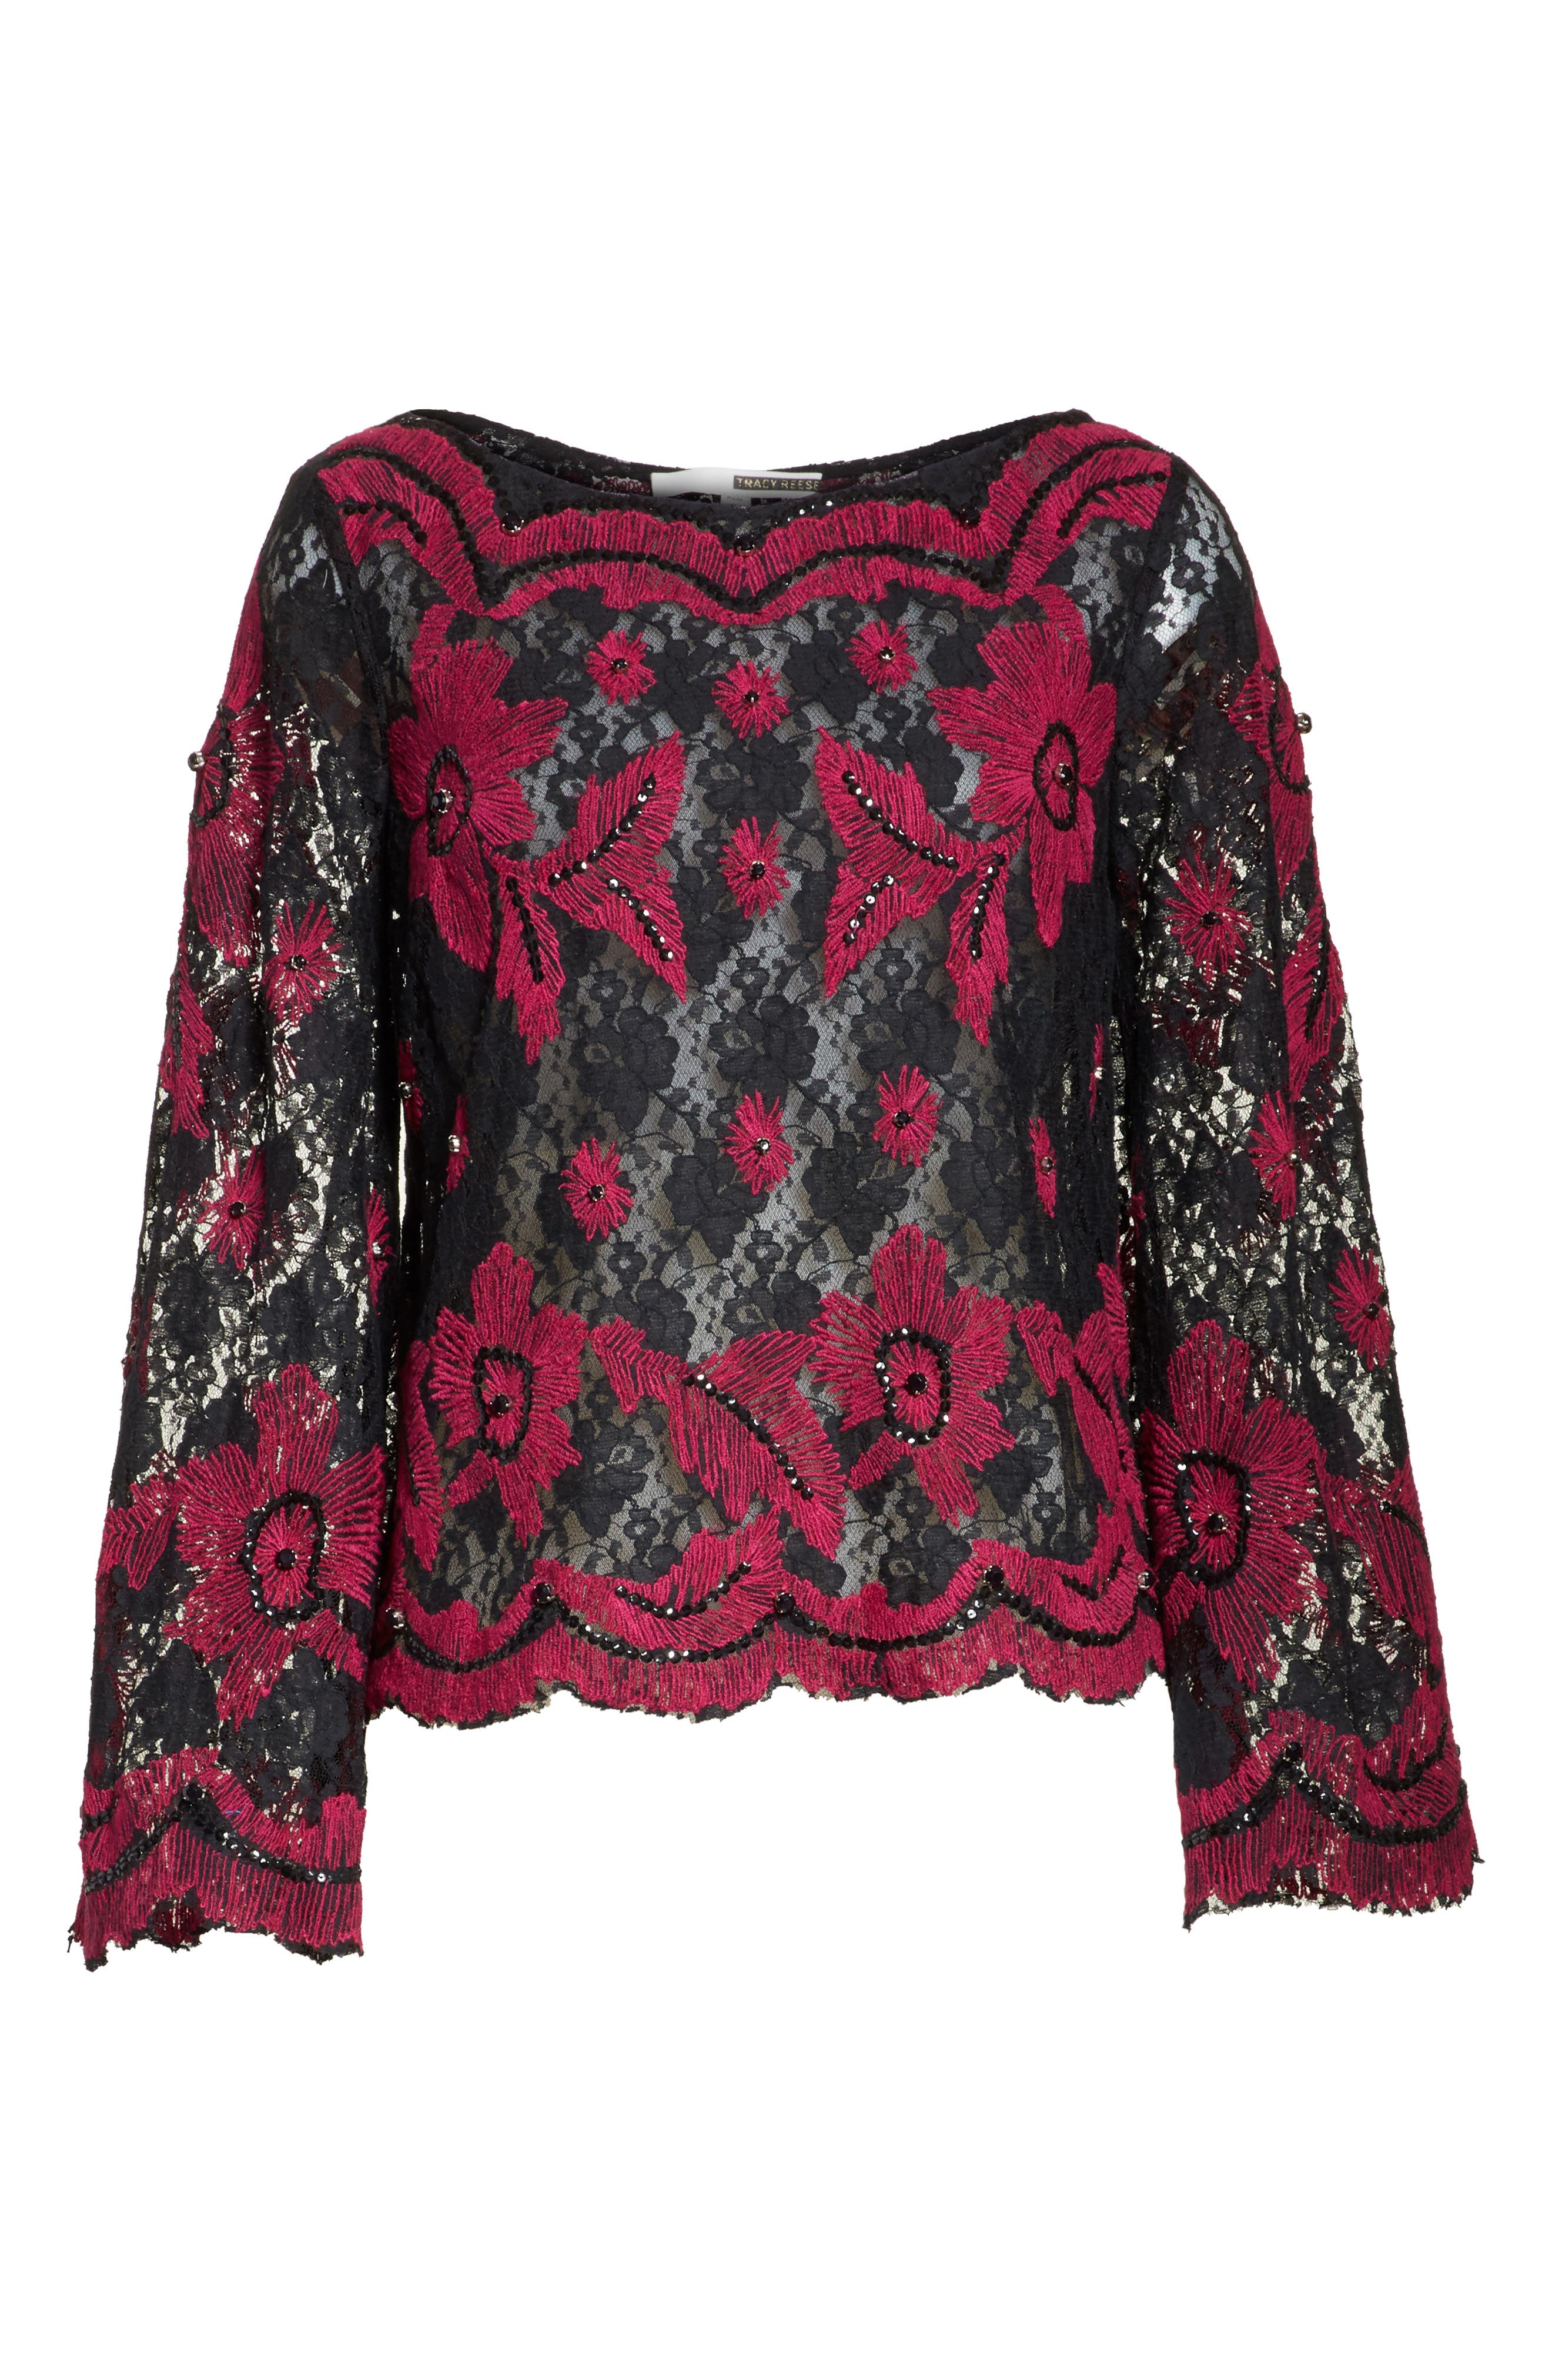 TRACY REESE,                             Embroidered Crop Tee,                             Alternate thumbnail 6, color,                             006